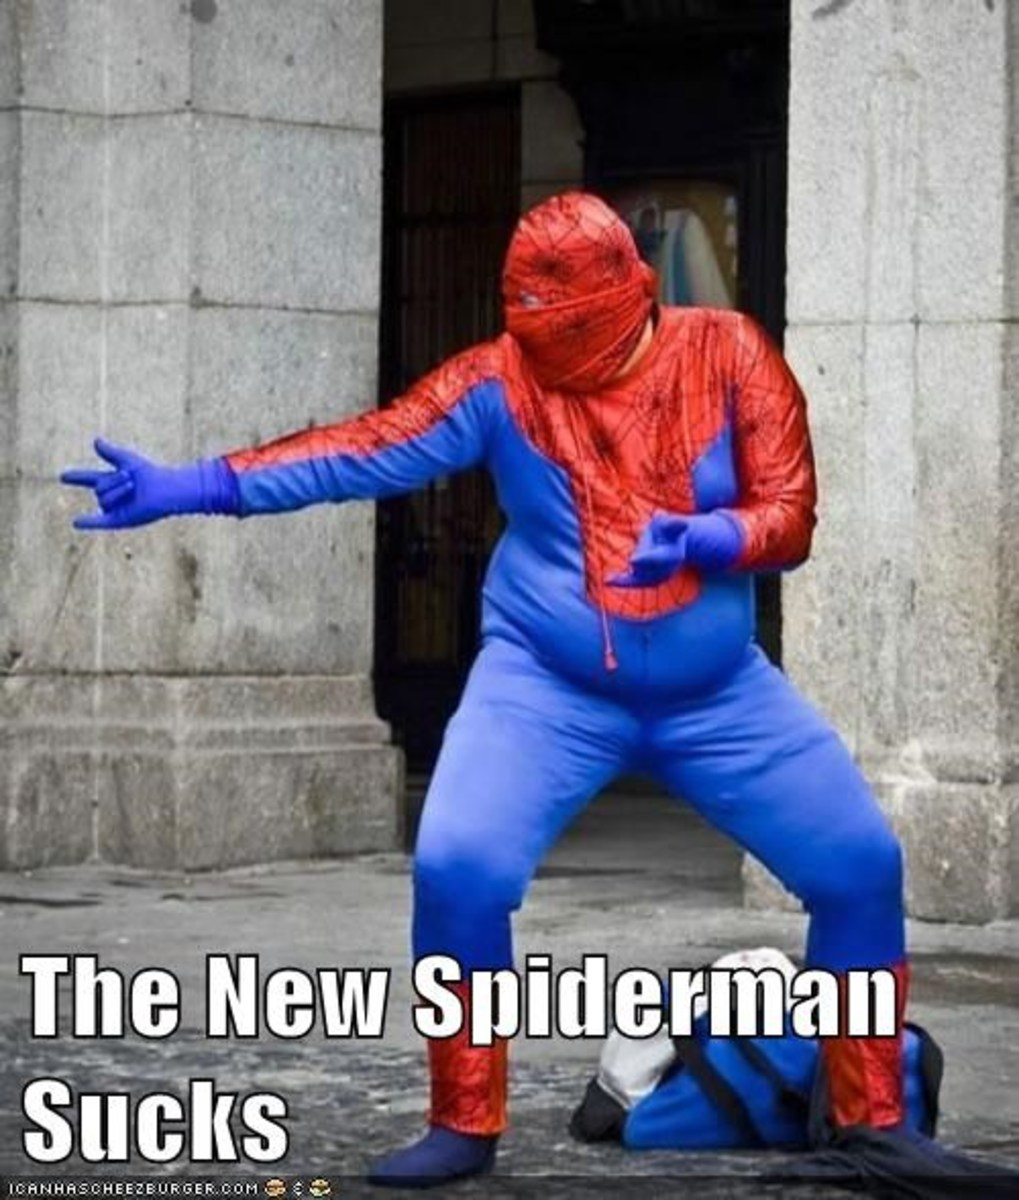 I Hate MCU Spider-Man or Iron Boy Jr. Part 2: And I Hate the Rest of Disney and Sony Too